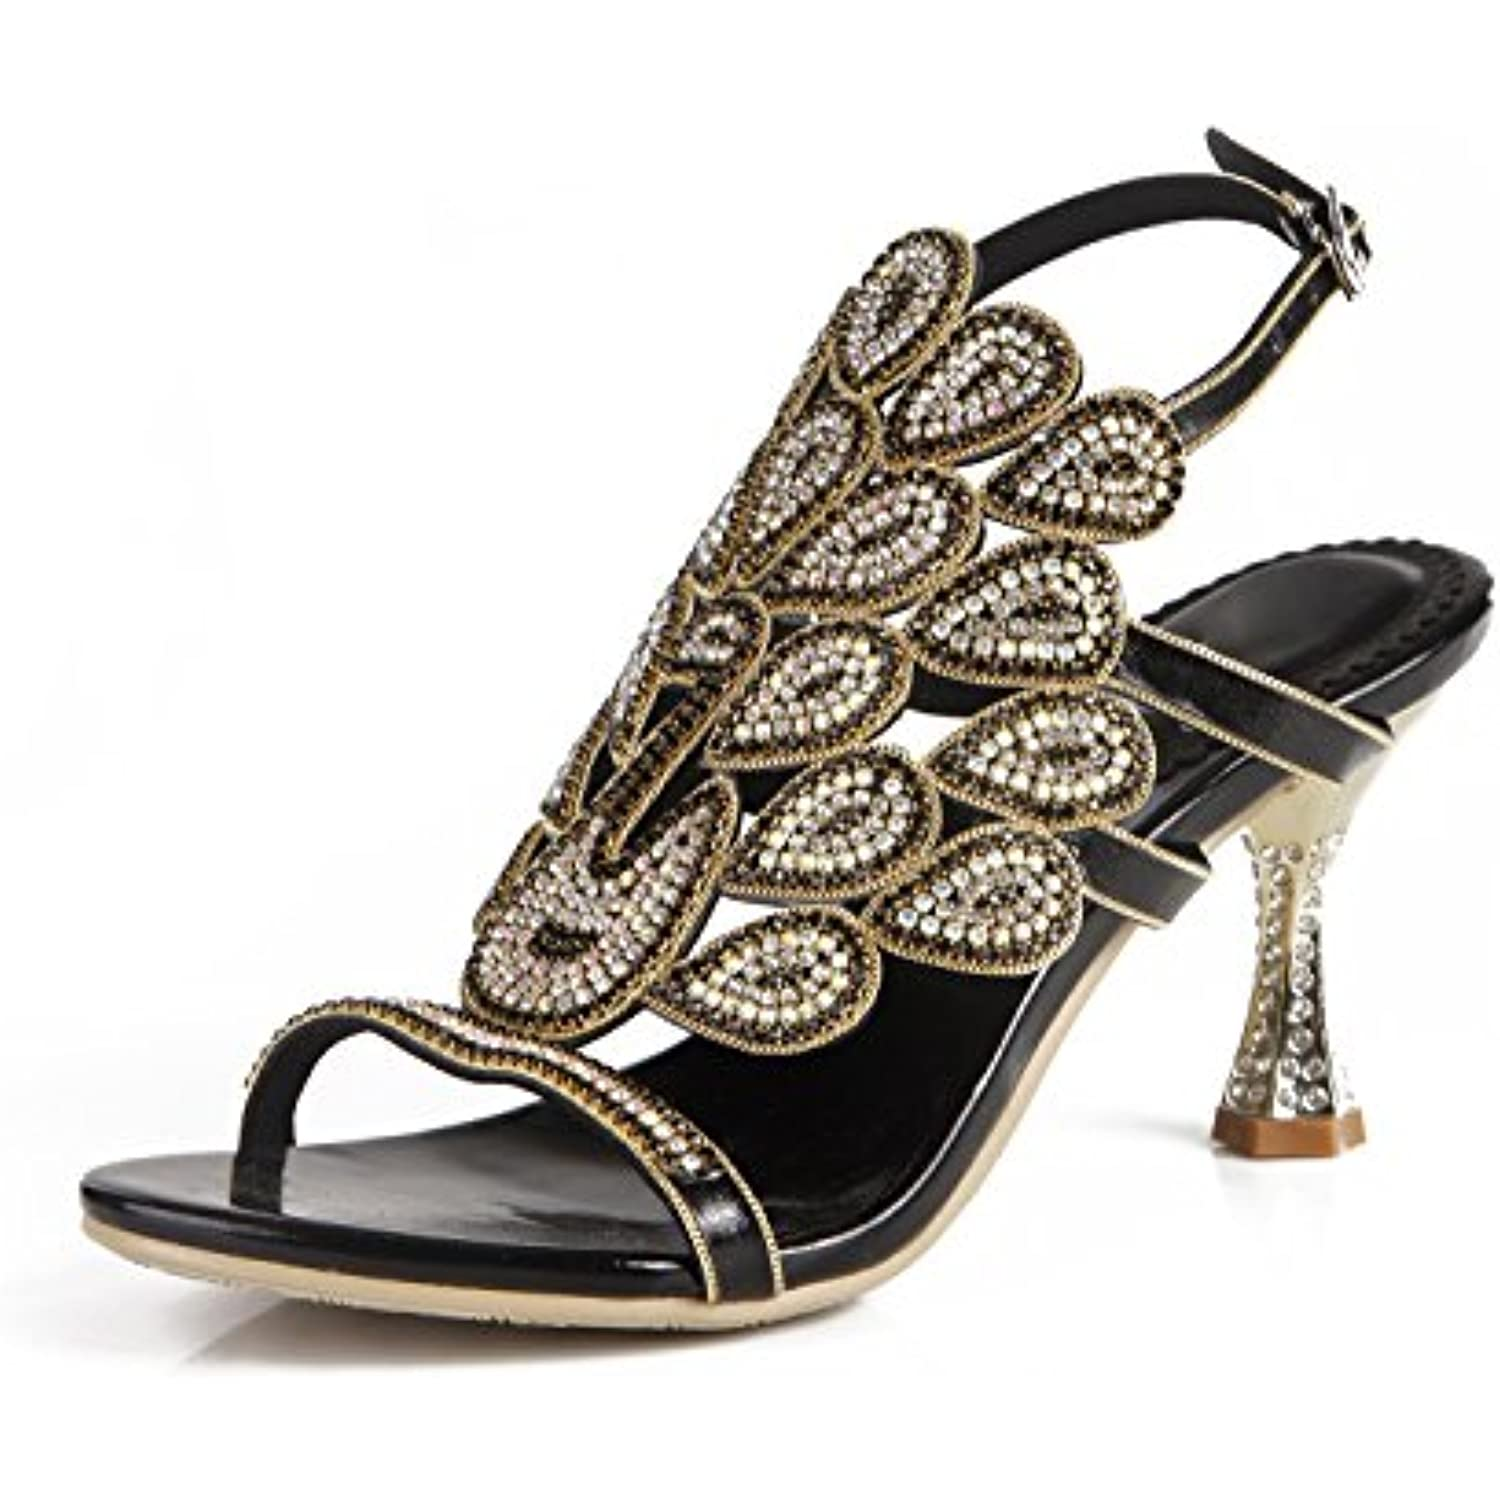 Scarpe da Donna Strass in Pelle Nuova Sexy Estate Strass Hollows Sandali Sexy Nuova Diamante Tacco Medio Open Toe Strass... Parent 12afa1